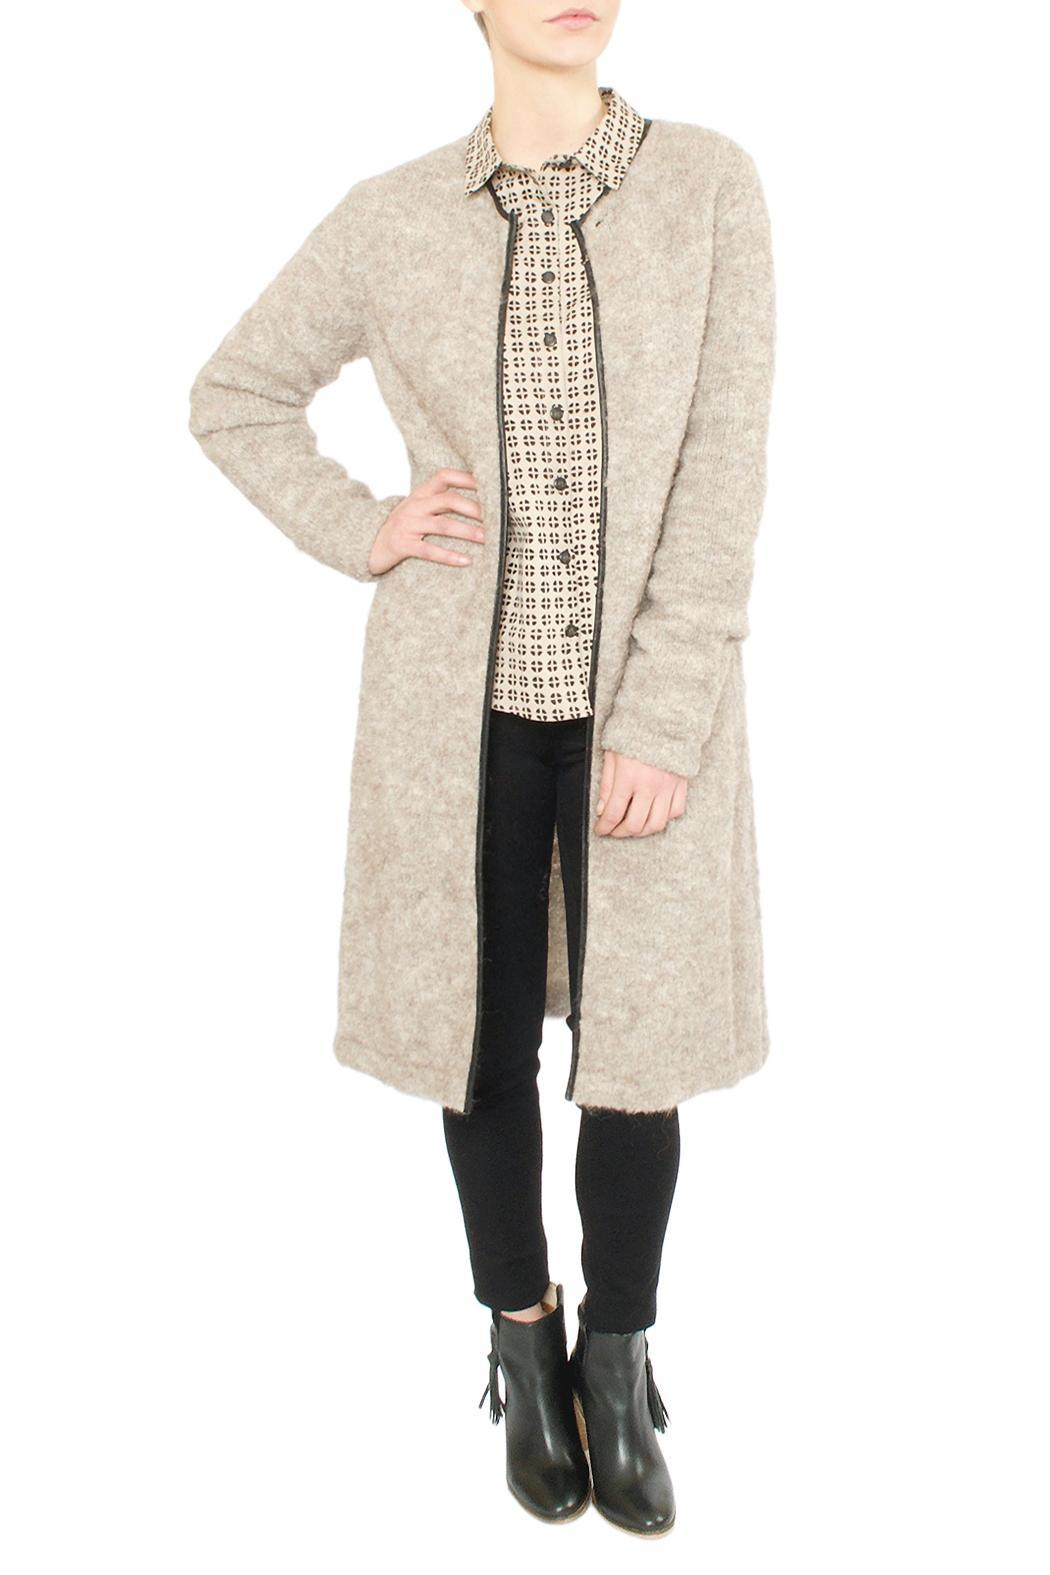 Shop womens sweaters & cardigans cheap sale online, you can buy knit sweaters, wool cardigans, cashemere sweaters and black cardigans for women at wholesale prices on cuttackfirstboutique.cf FREE Shipping available worldwide.